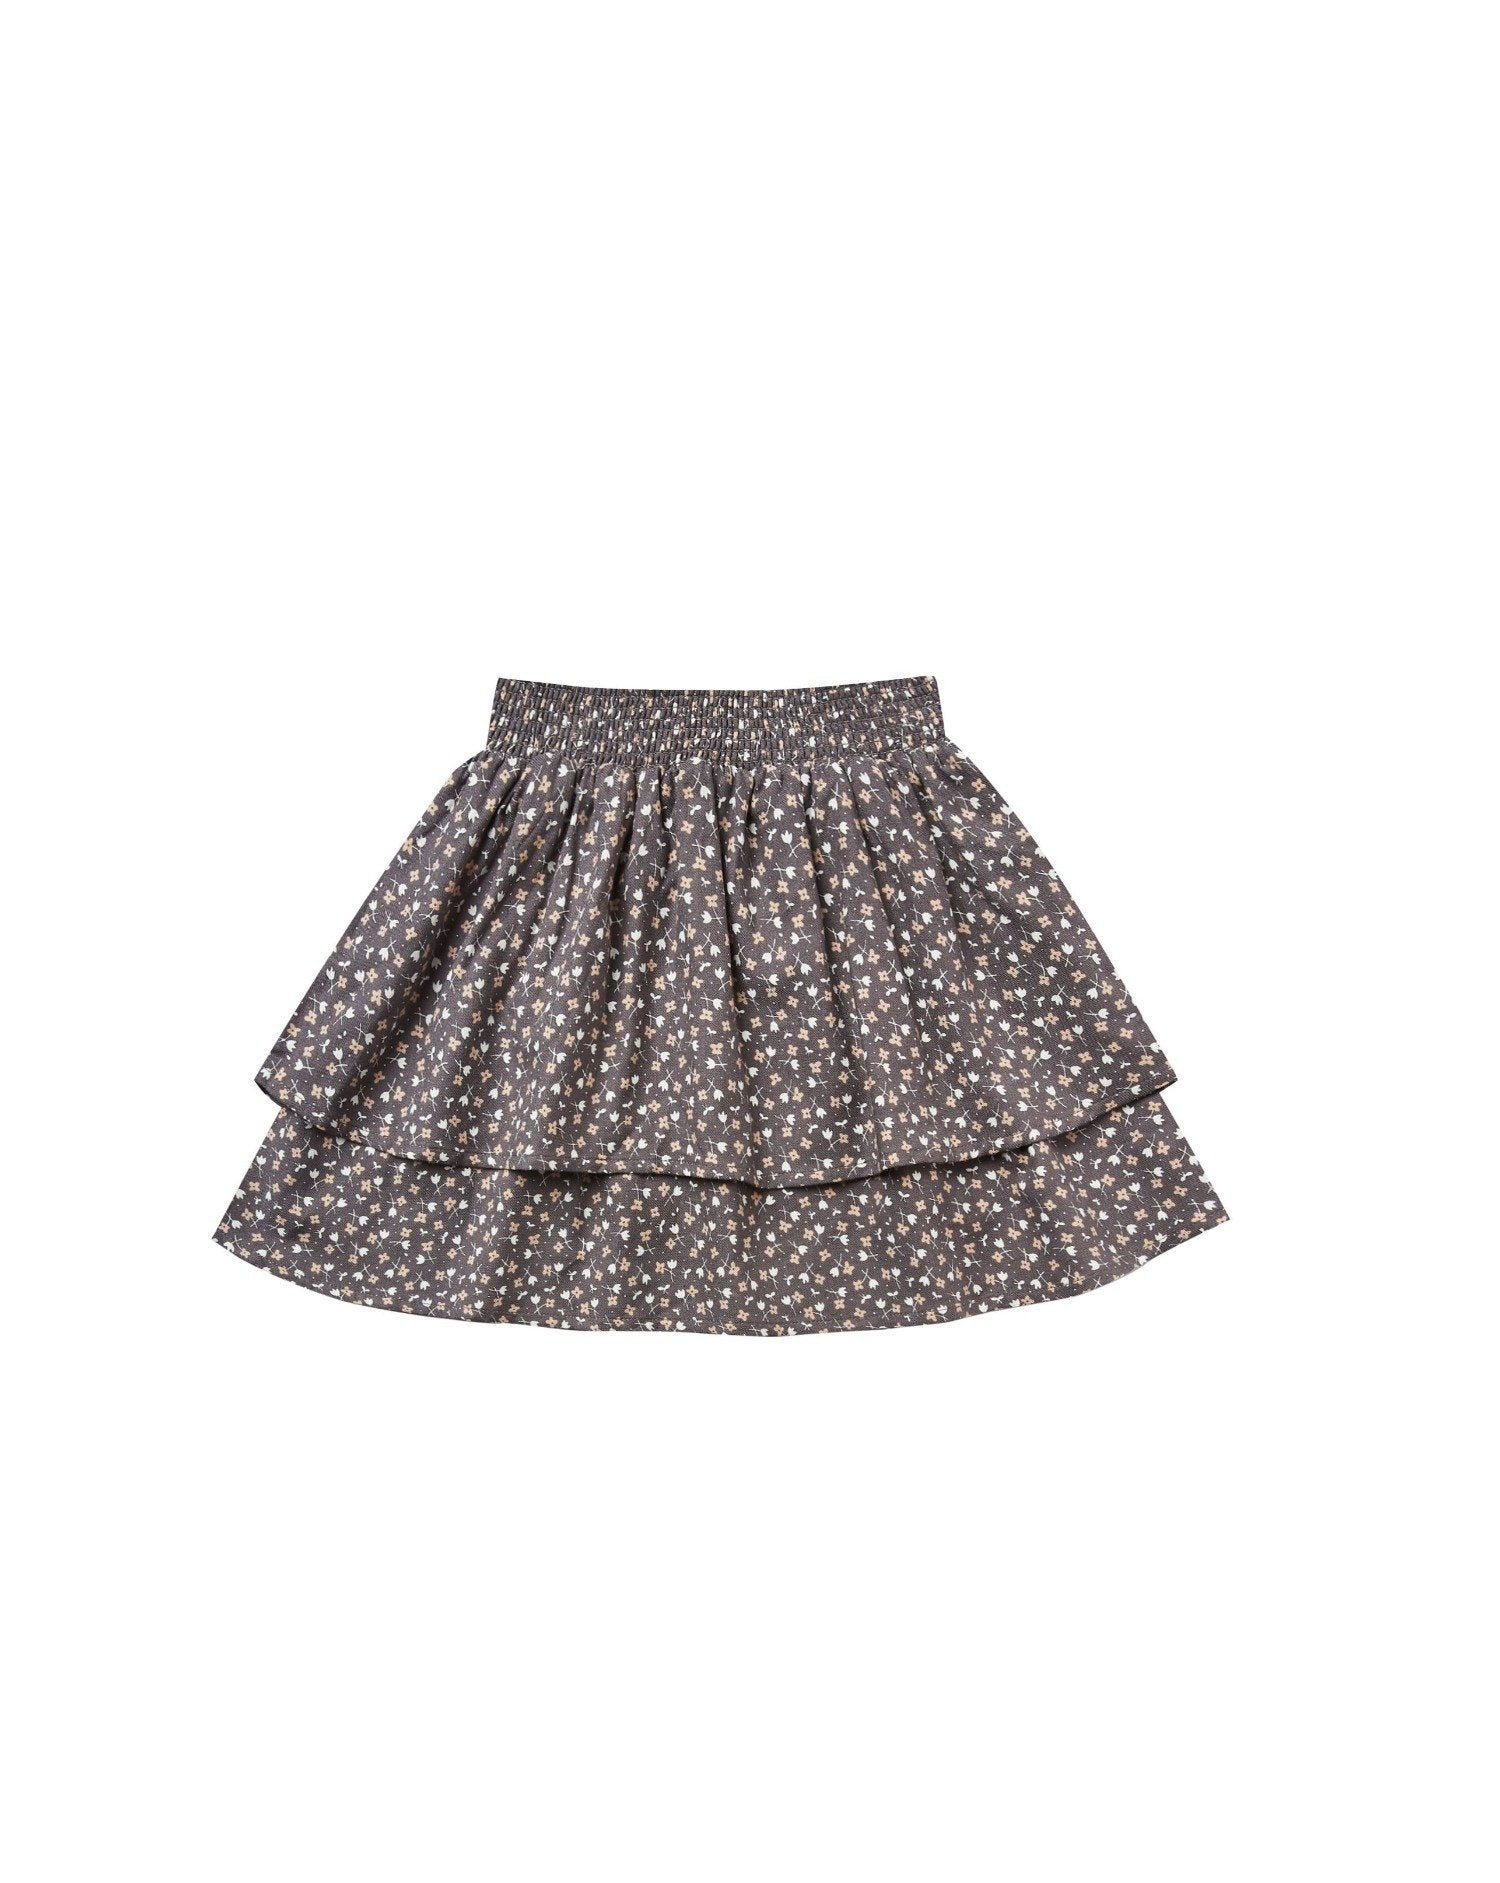 Load image into Gallery viewer, Ditsy Tiered Mini Skirt - Washed Indigo | Rylee & Cru Fall 2020 Enchanted Forest Collection